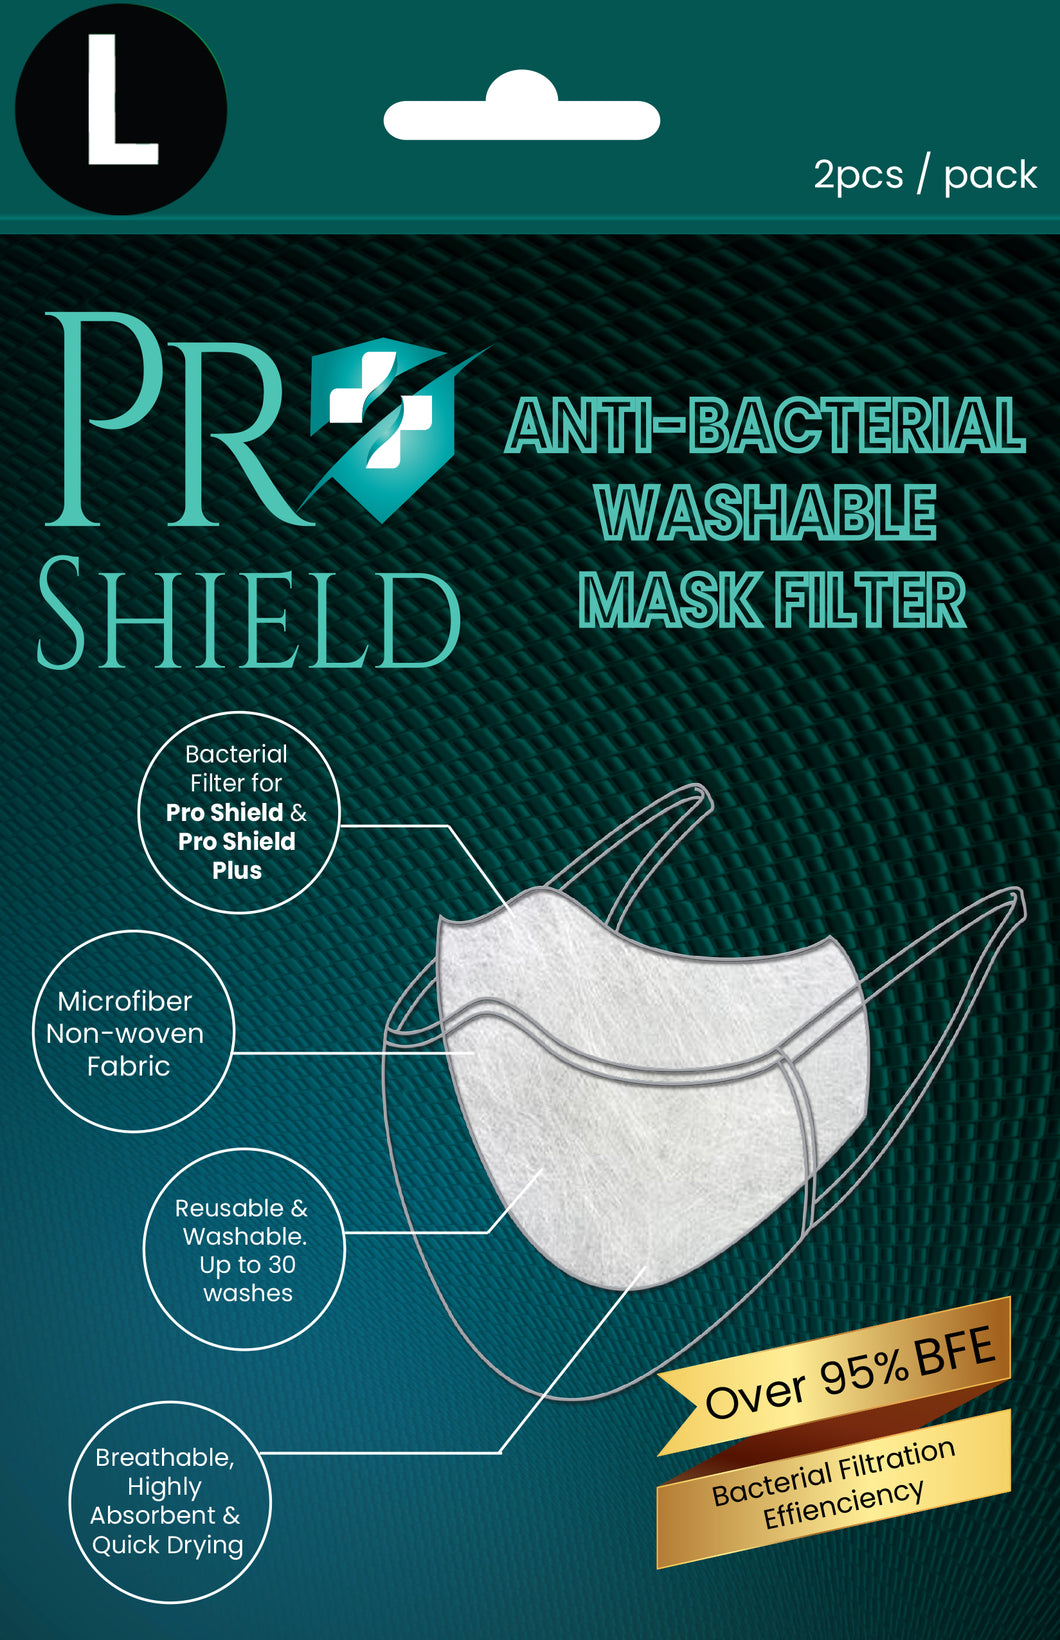 L size | ProShield Antibacterial Reusable Nanofiber Filter (2 sheets/pack)